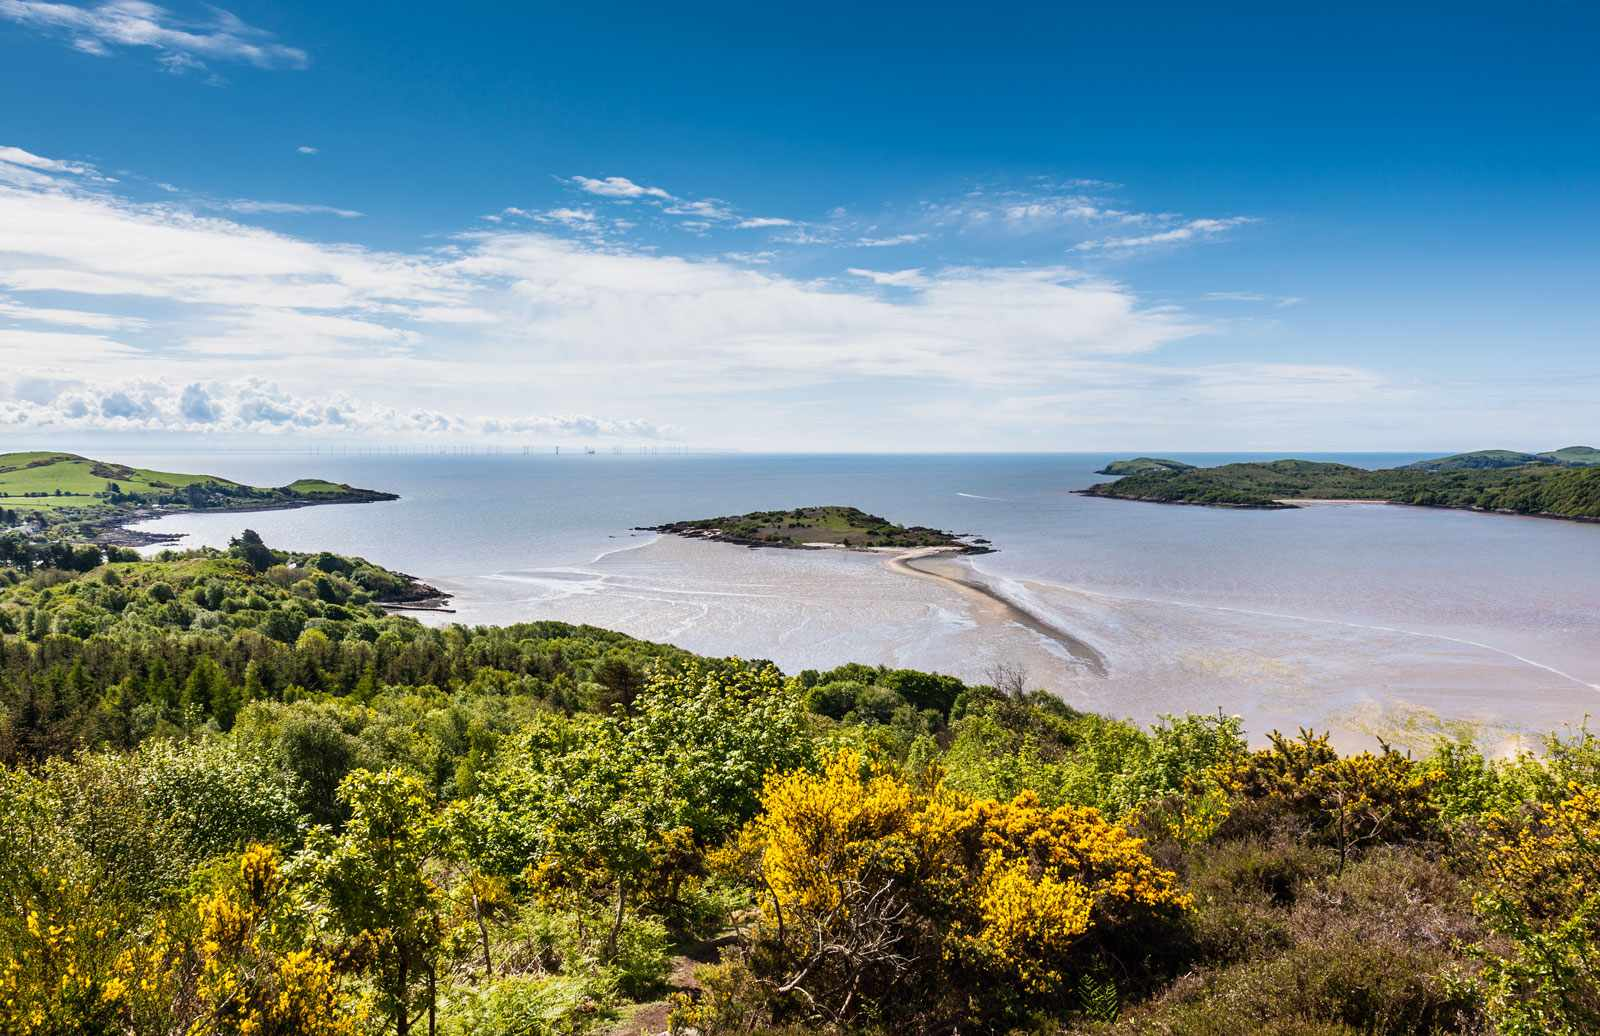 The-view-from-The-Muckle-overlooking-Rough-Island-and-Rough-Firth-by-Simon-Whaley-395f69f